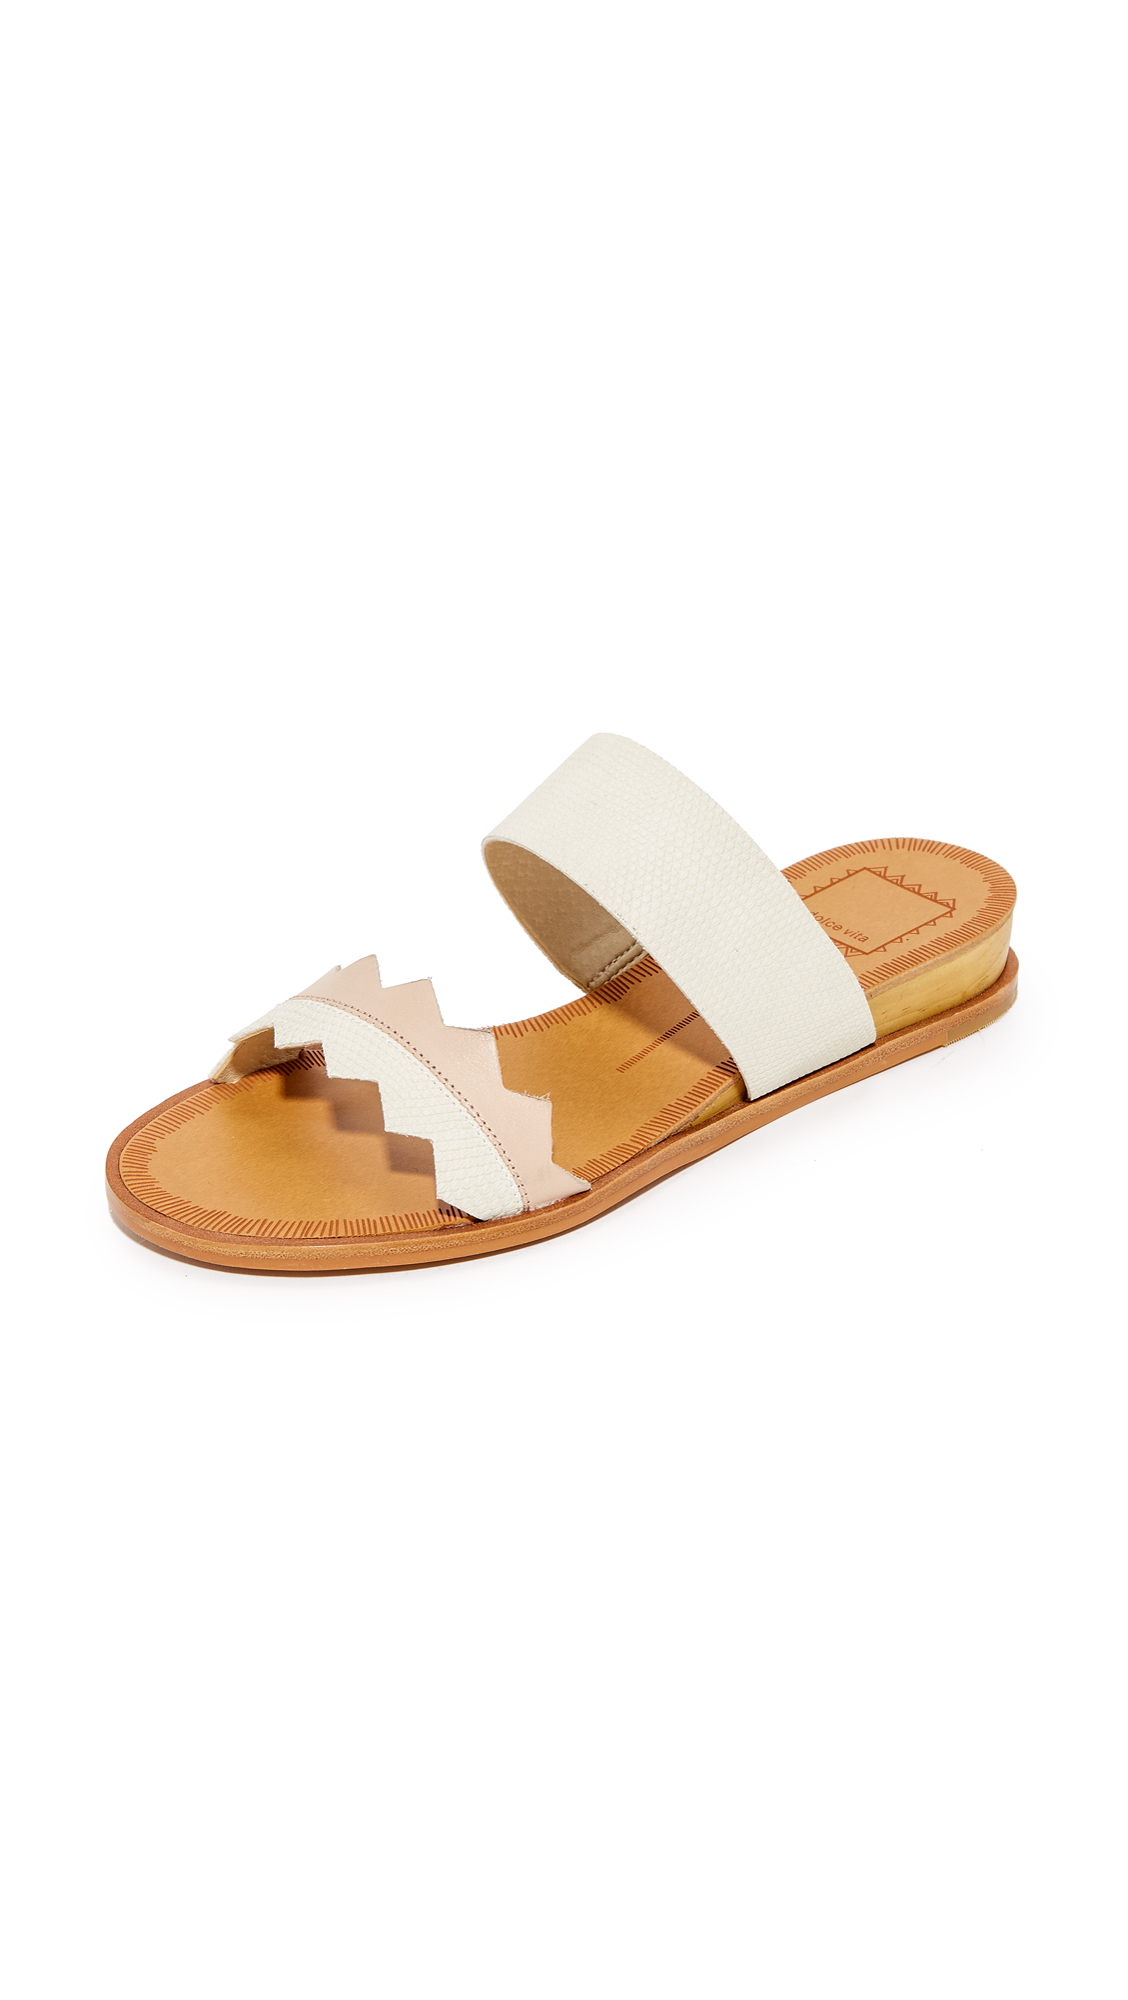 Mixed texture panels of faux and real leather lend a tactile touch to these Dolce Vita slide sandals. Low wood wedge heel. Man made sole. Fabric: Faux leather. Leather: Cowhide. Imported, China. This item cannot be